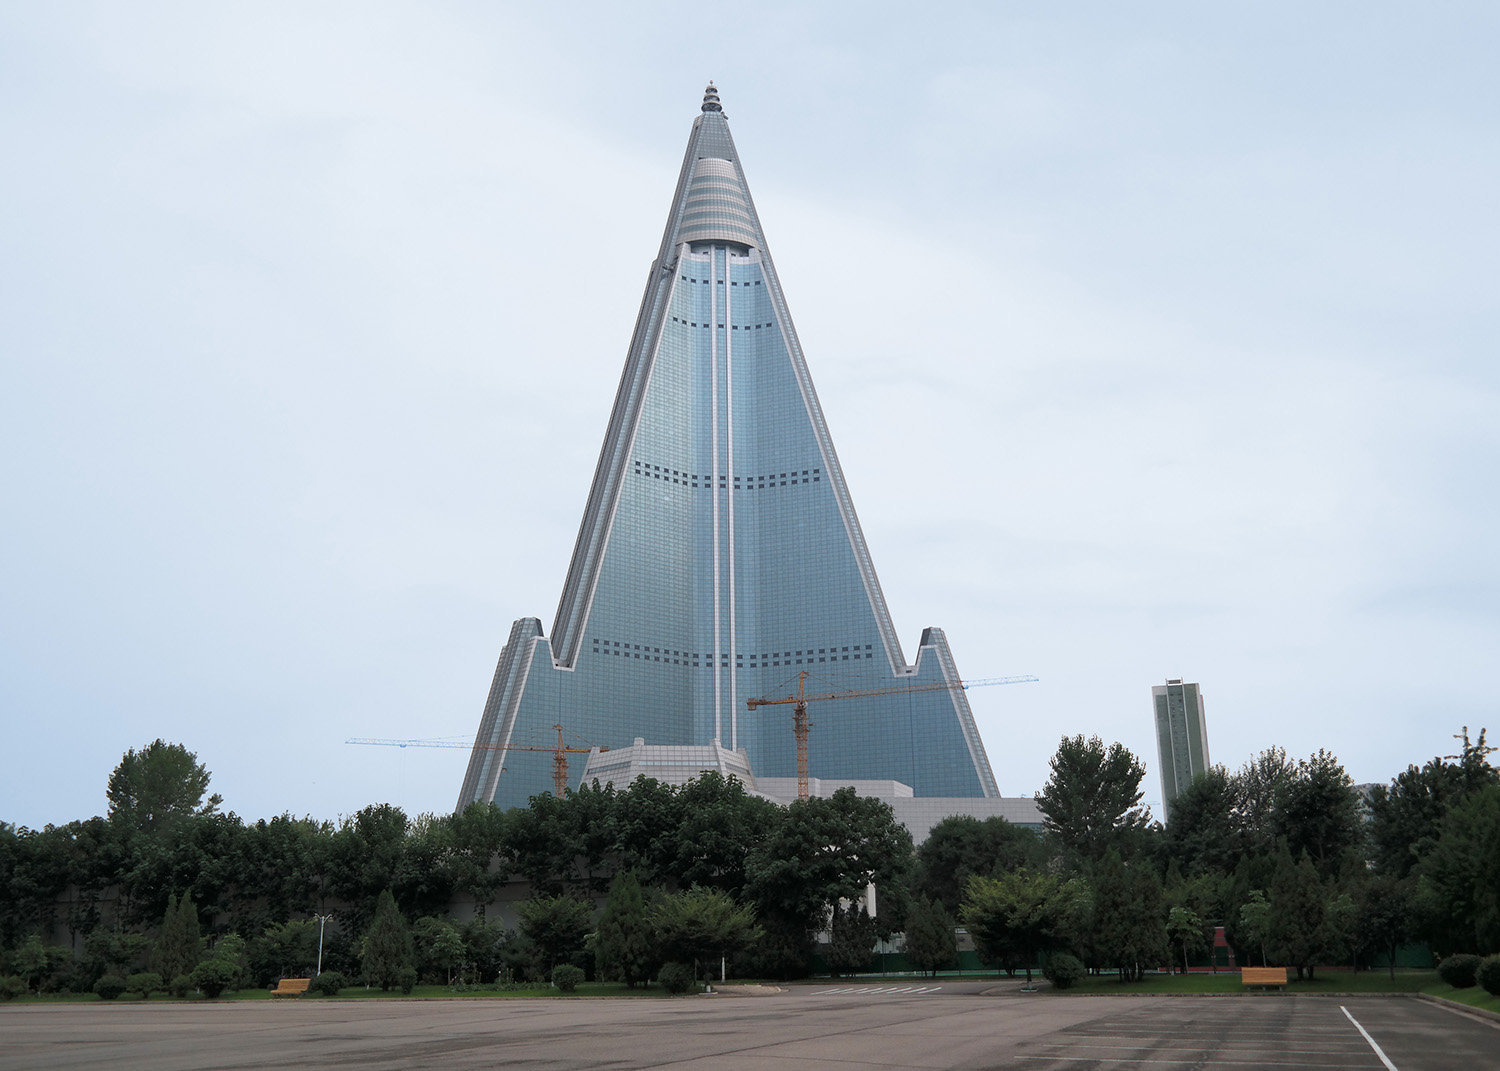 Ryugyong Hotel, aka The Hotel of Doom. Its construction began in 1987 – it is still incomplete 33 years later